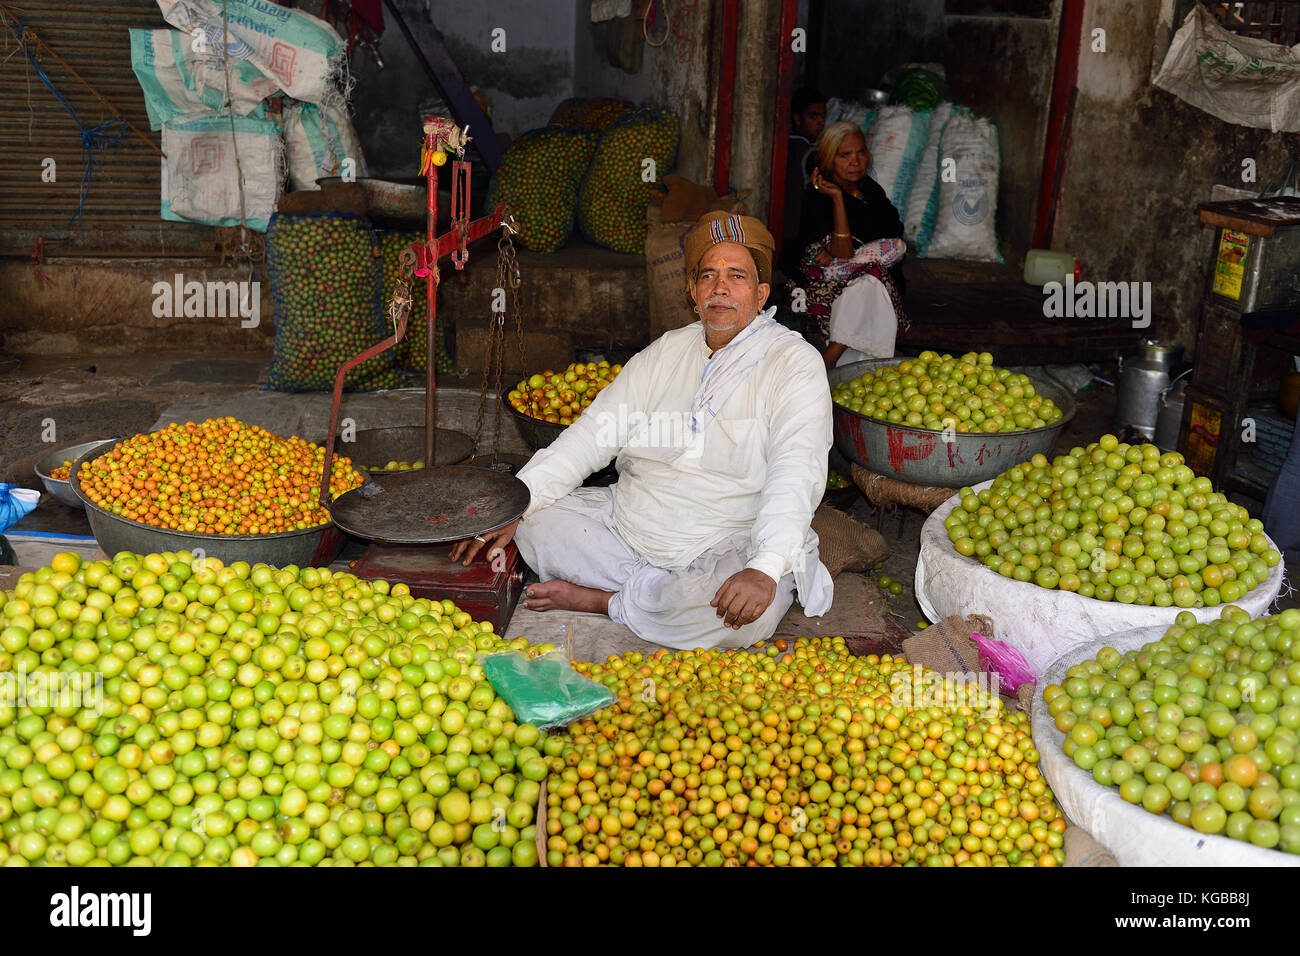 AHMEDABAD, GUJARAT, INDIA - 30 JANUARY 2015: Indian selling vegetables from carts in the street in the Ahmedad city - Stock Image